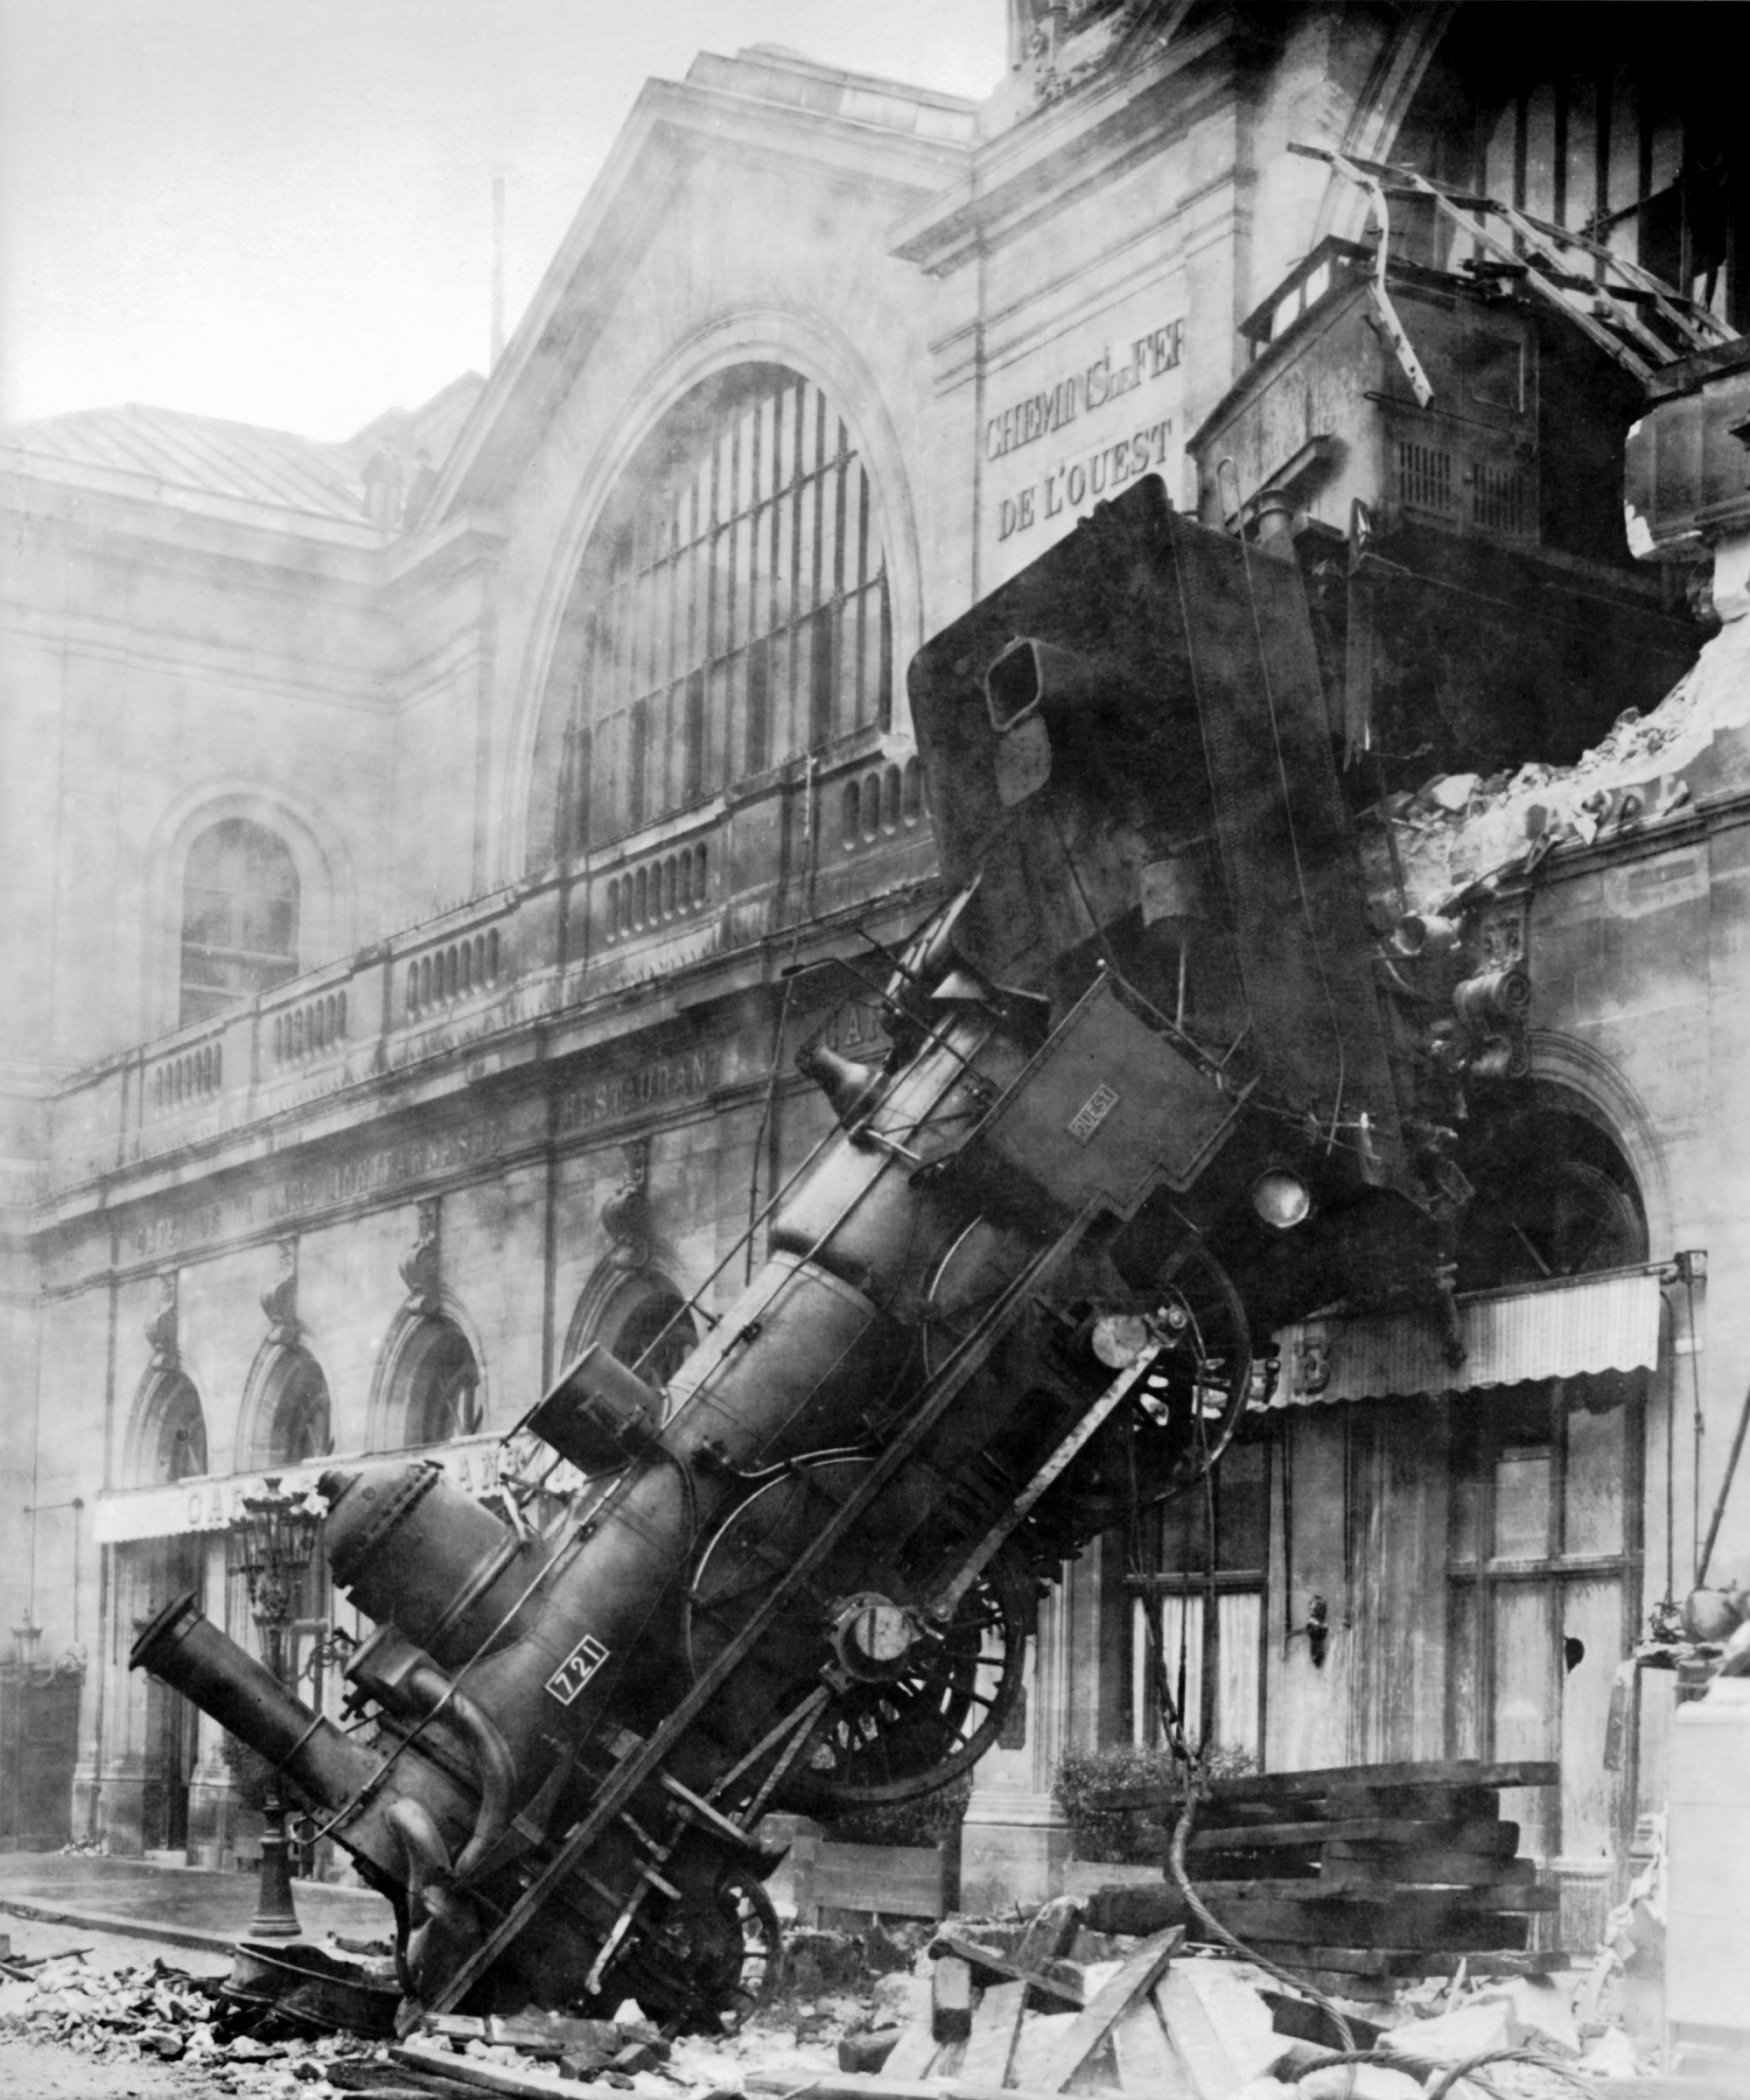 Incidente a Montparnasse, 1895